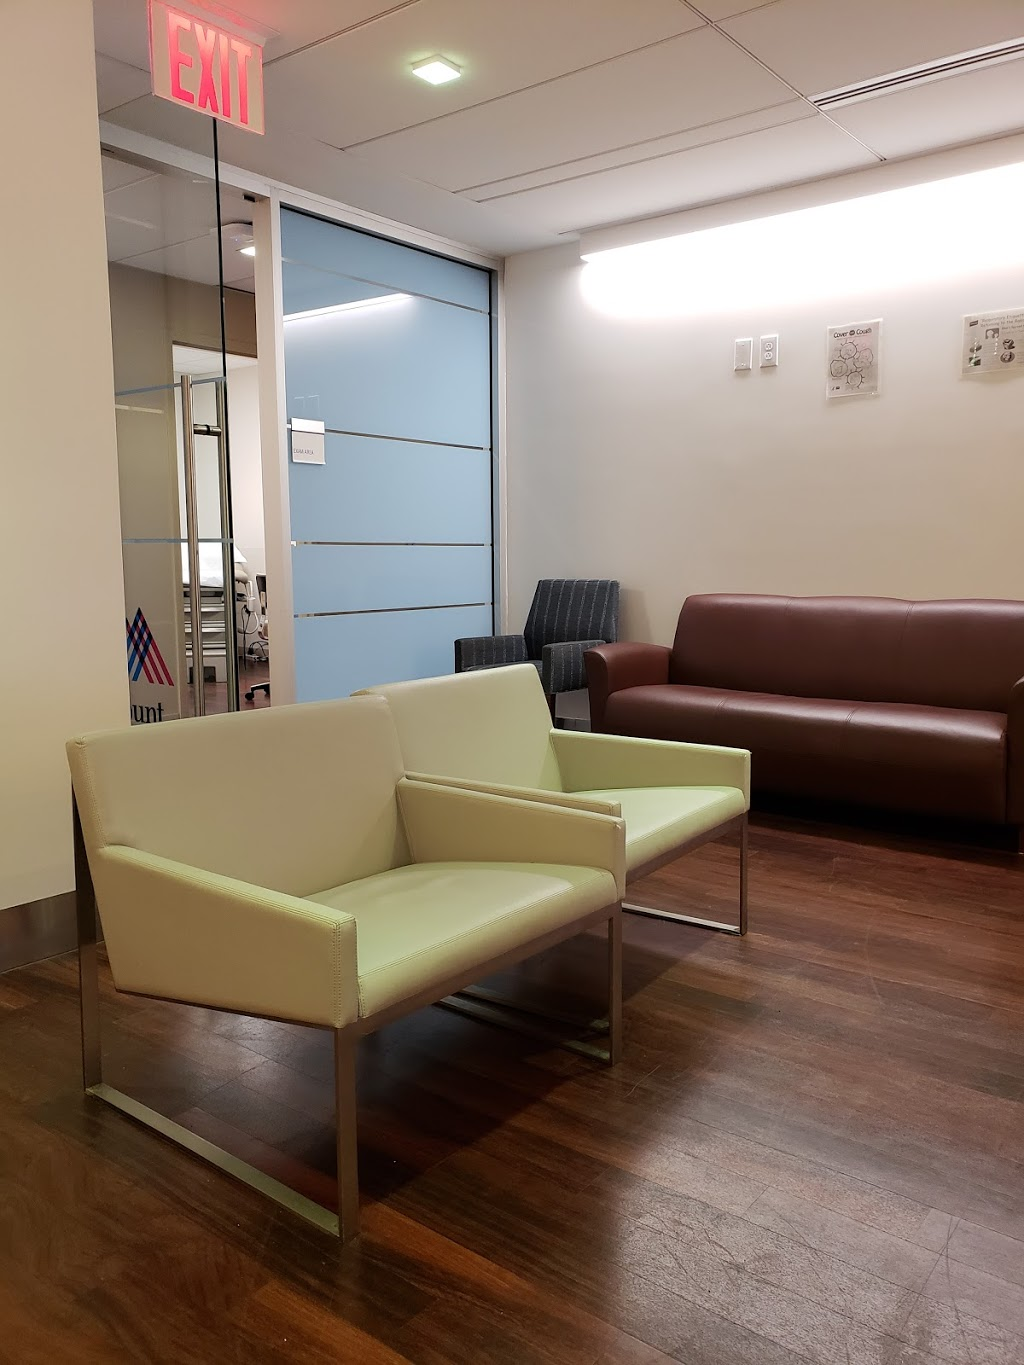 Mount Sinai Doctors - West 23rd Street - doctor  | Photo 1 of 10 | Address: 309 W 23rd St, New York, NY 10011, USA | Phone: (212) 352-2600